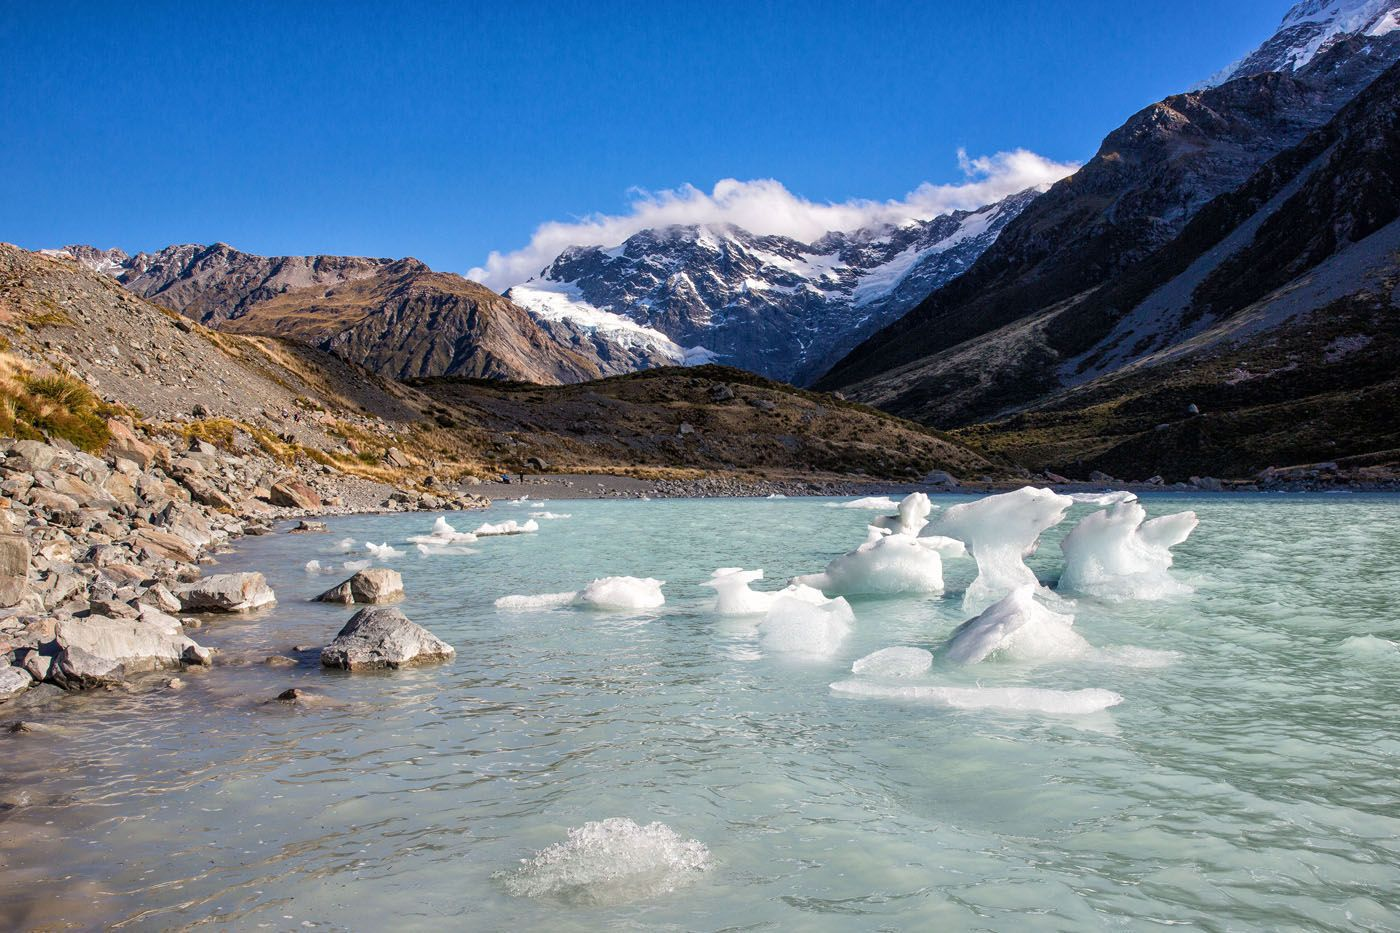 Hiking to Mt Cook